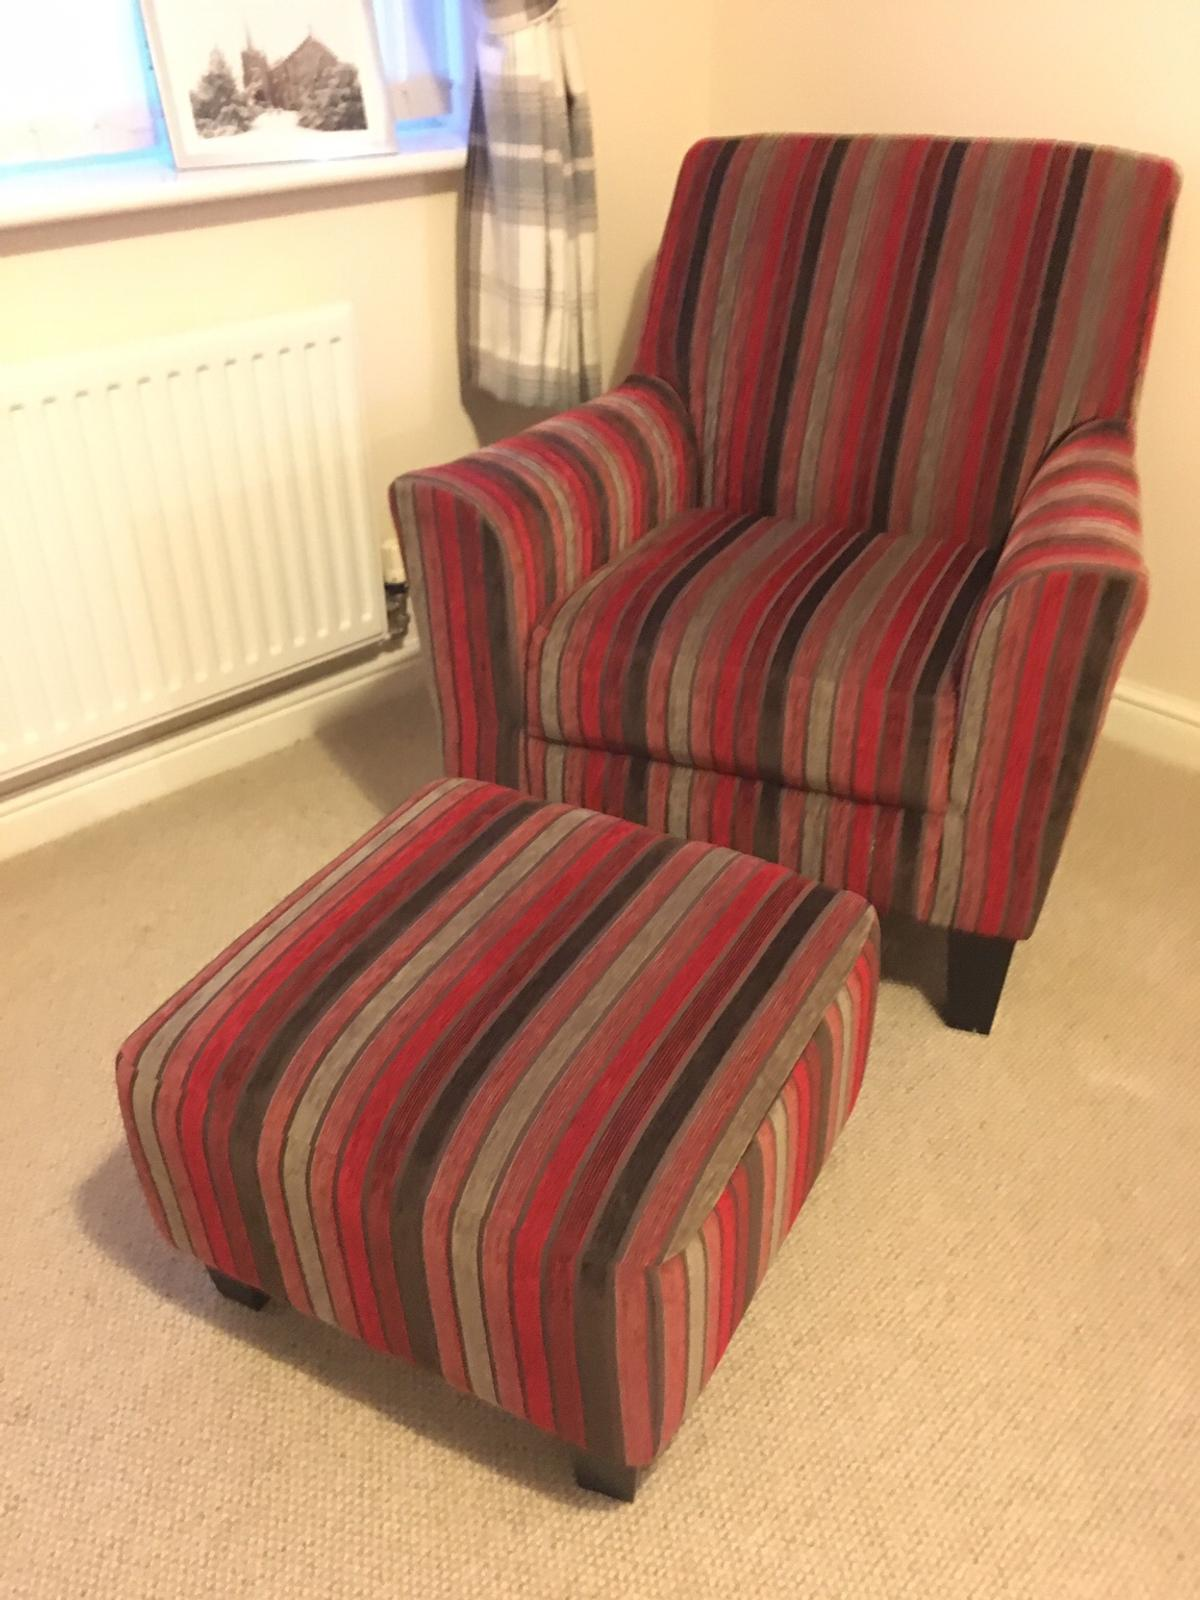 Peachy Next Accent Chair And Footstool In Ll29 Colwyn For 155 00 Ocoug Best Dining Table And Chair Ideas Images Ocougorg